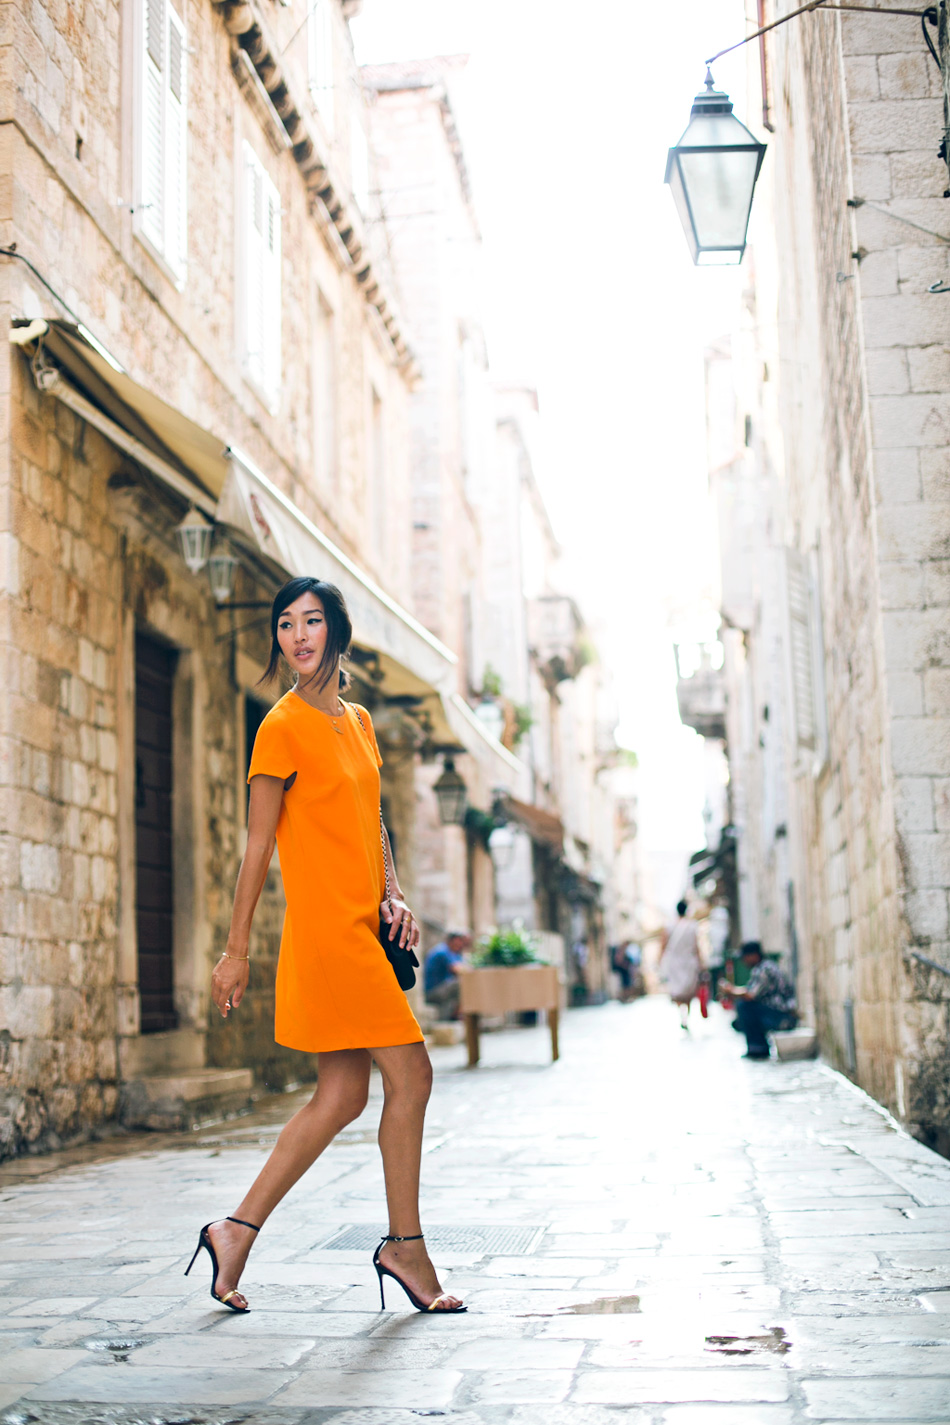 blogger-dubrovnik-garry-papper-girl-go-dubrovnik (17)